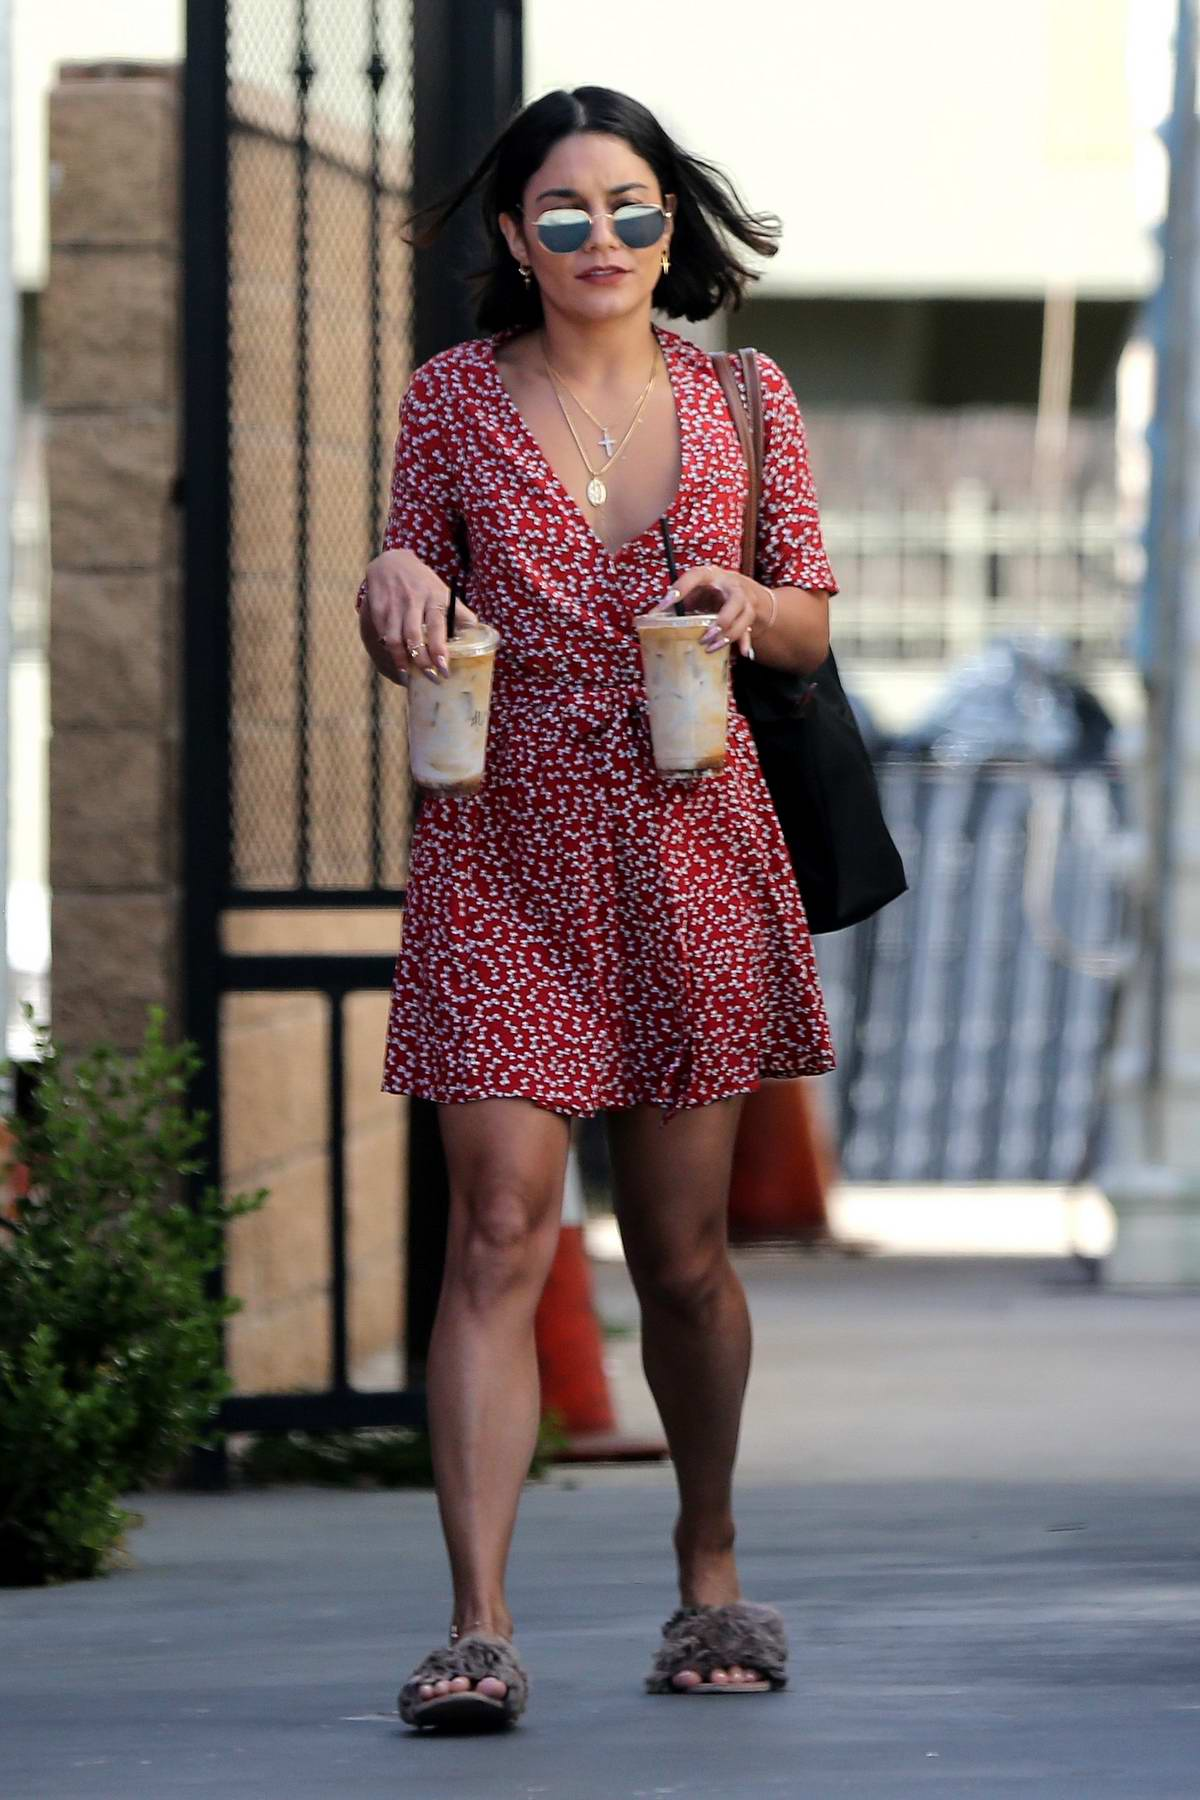 Vanessa Hudgens in a Red Floral Dress stops by for some Coffee in Los Angeles